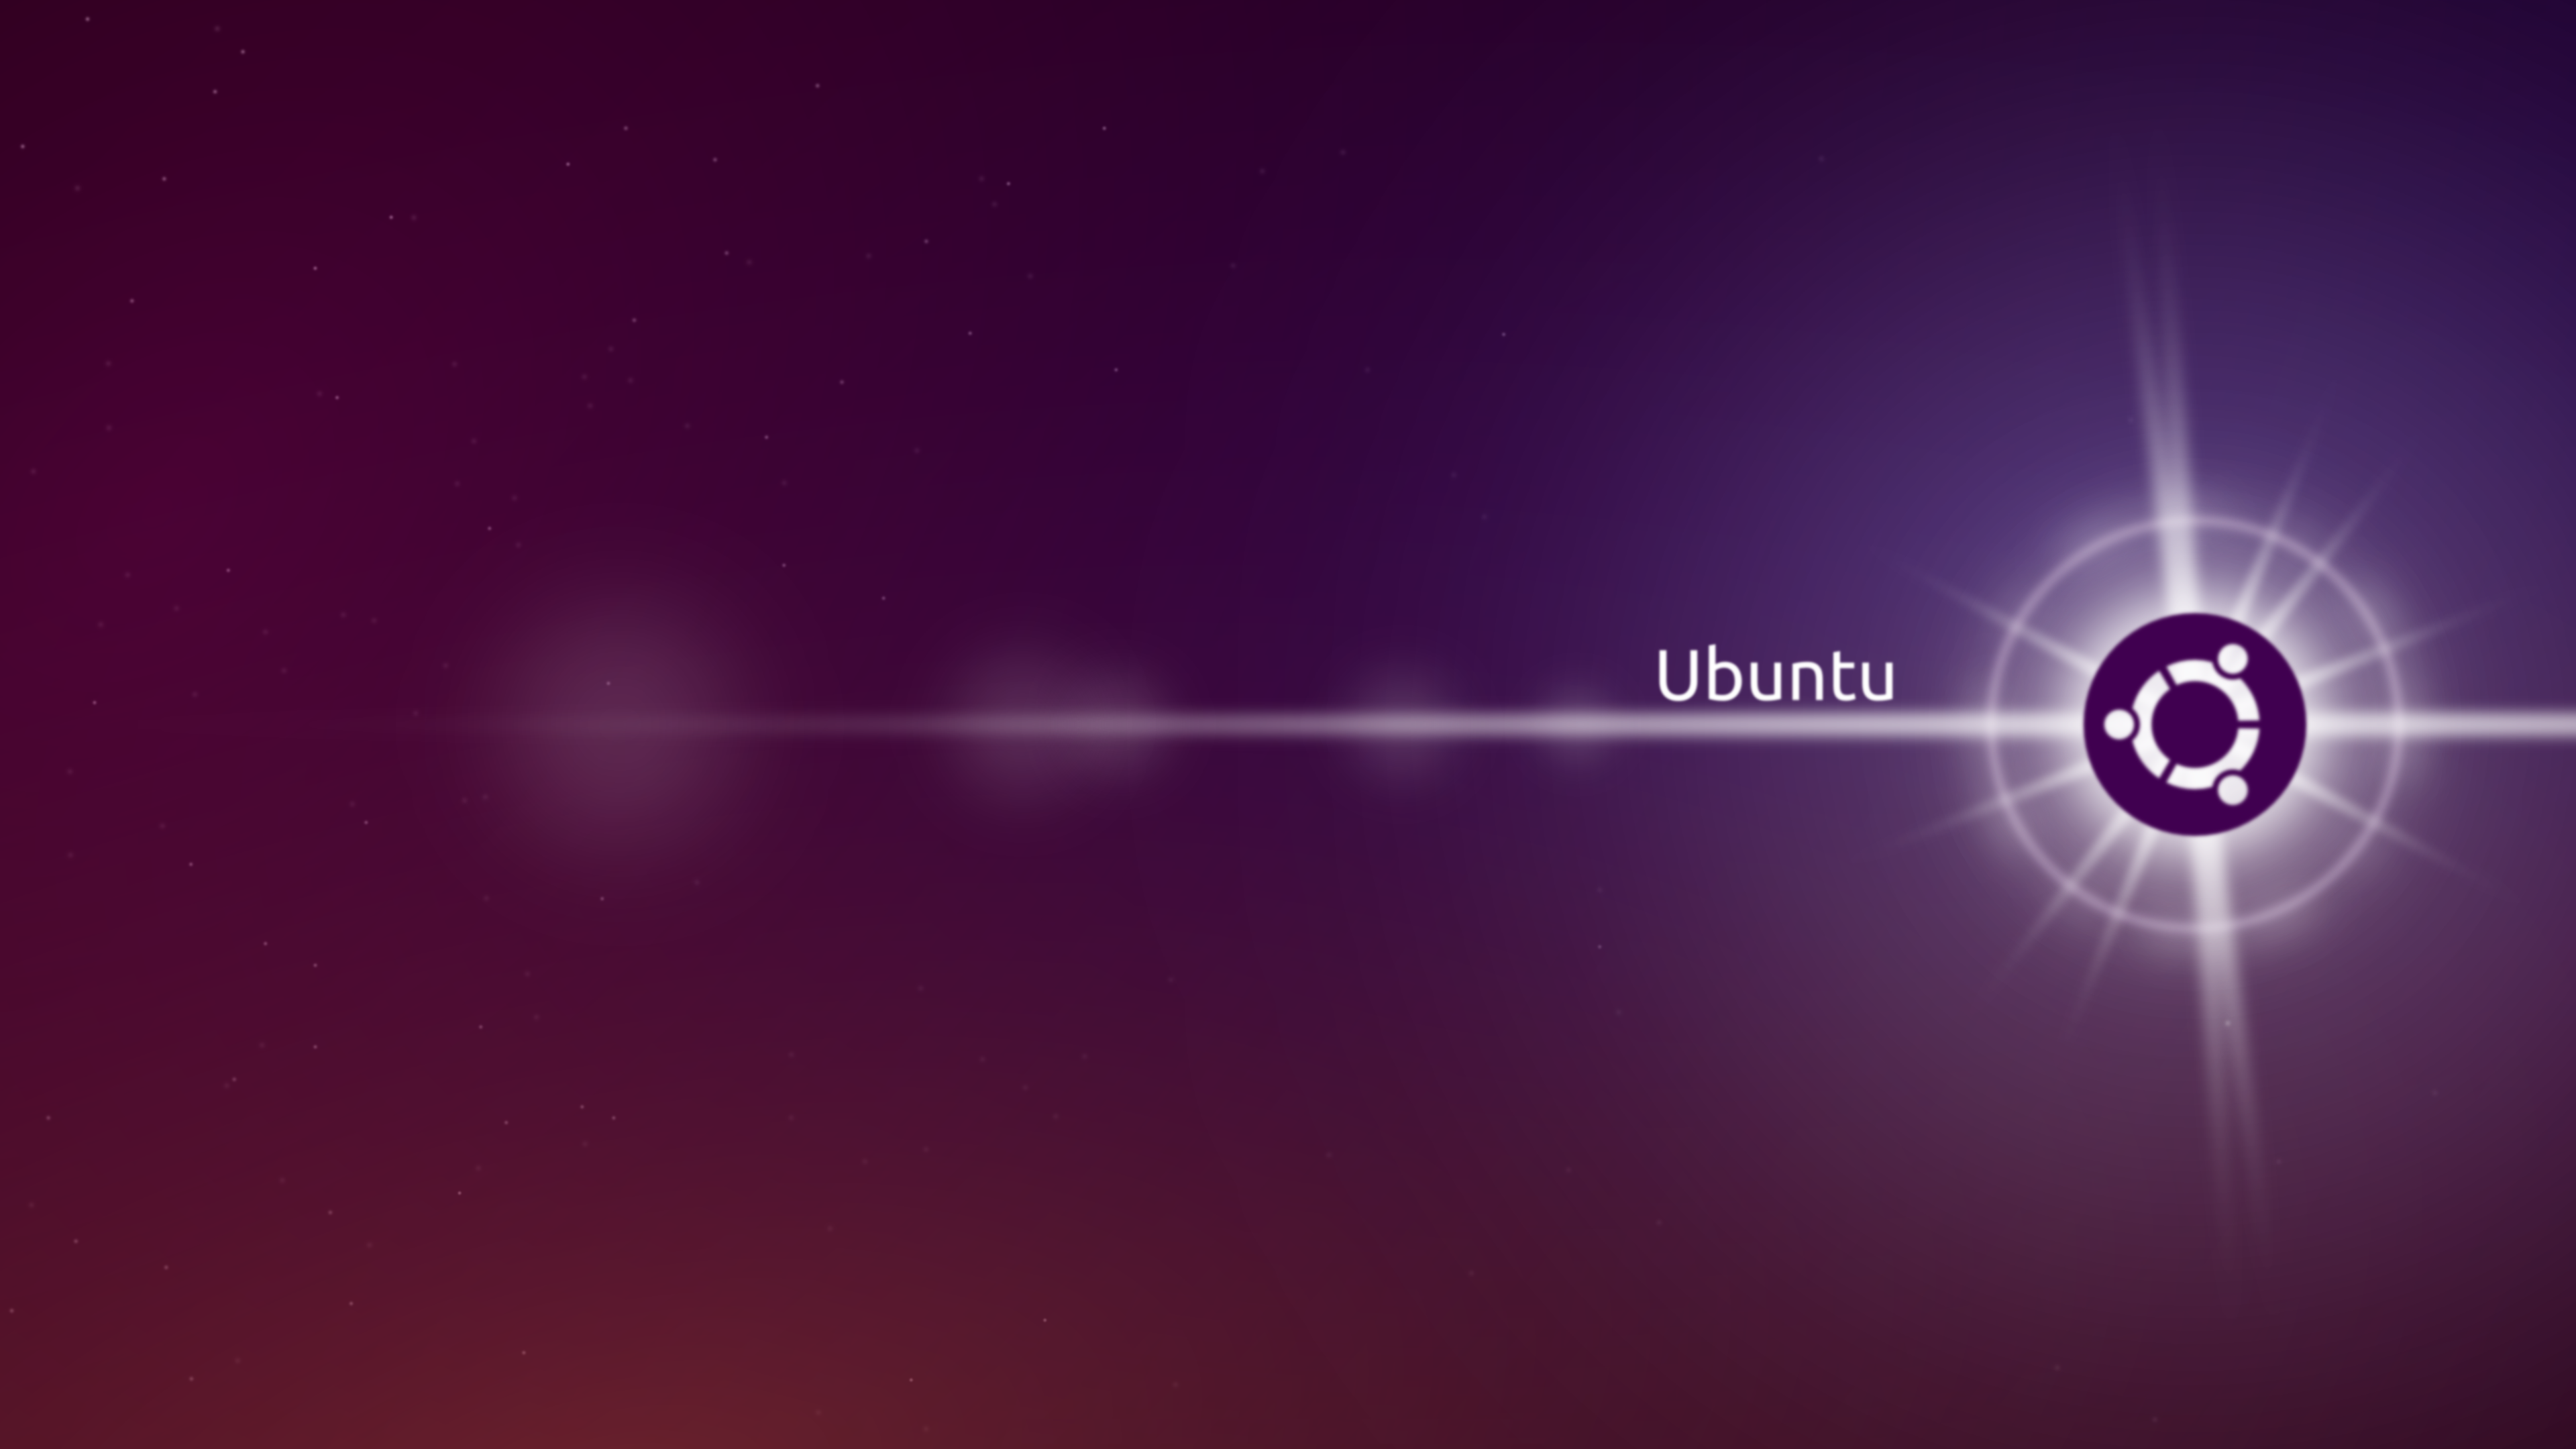 Ubuntu Wallpapers HD 3840x2160